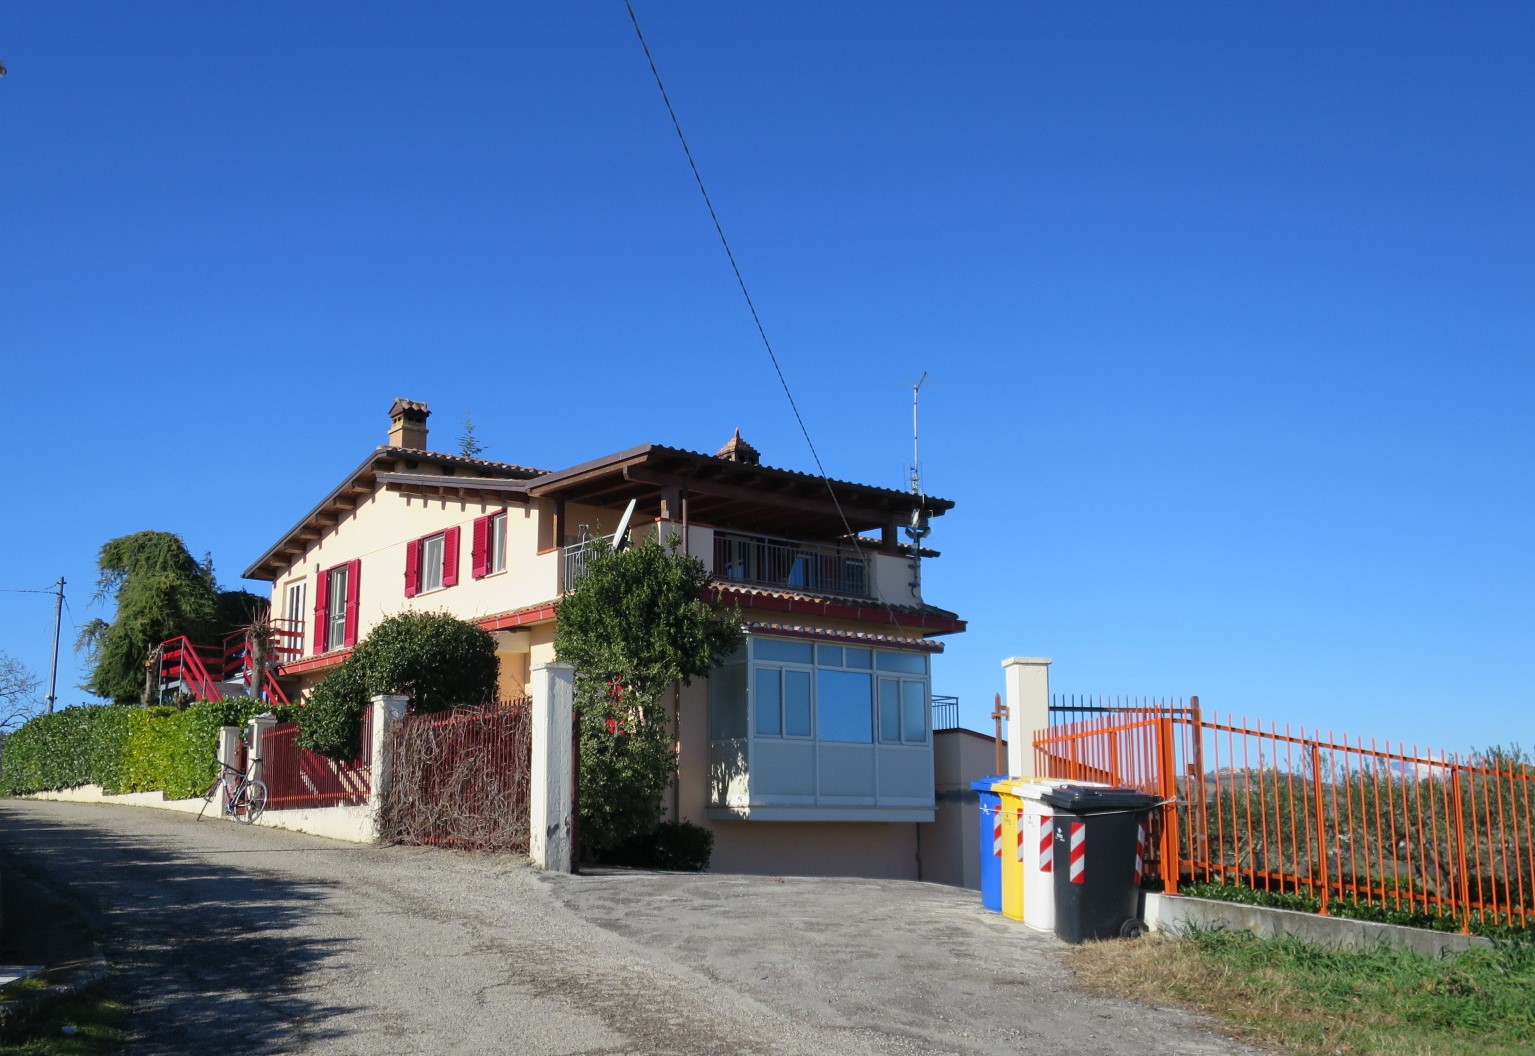 Country Houses Country Houses for sale Cellino Attanasio (TE), Casa Feudi - Cellino Attanasio - EUR 198.728 280